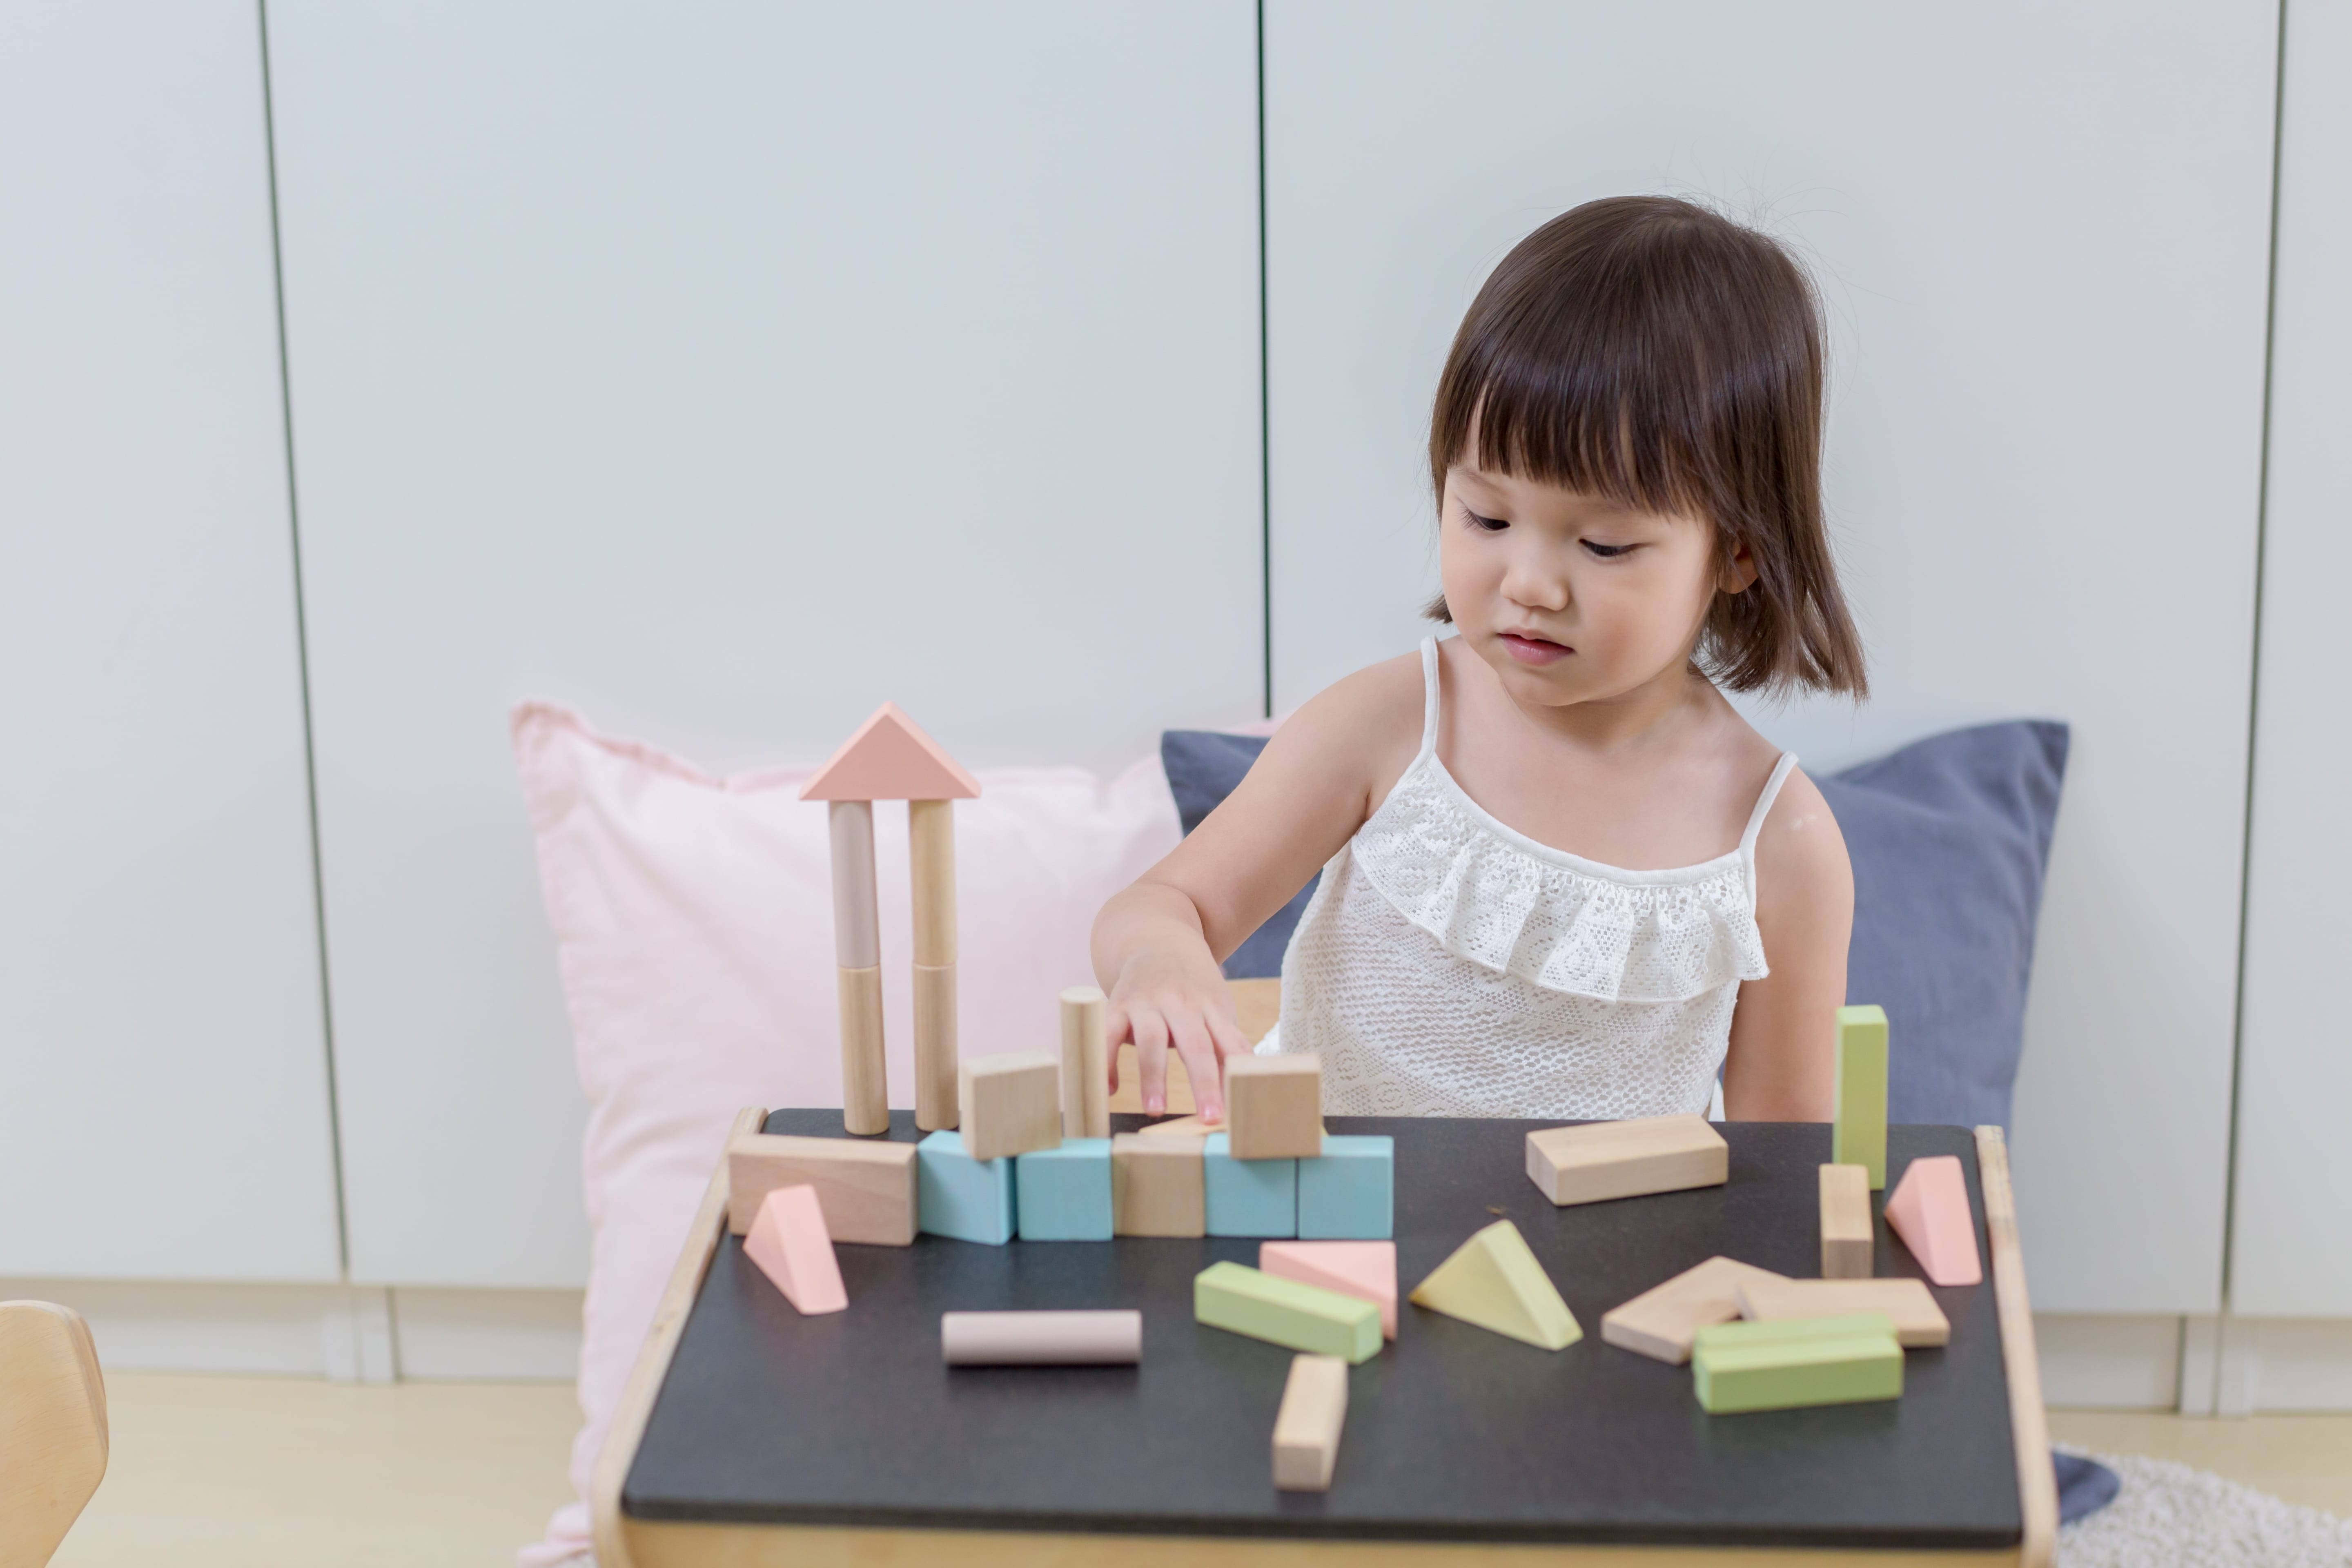 5507_PlanToys_40_UNIT_BLOCKS_Blocks_and_Construction_Creative_Coordination_Language_and_Communications_Social_Fine_Motor_2yrs_Wooden_toys_Education_toys_Safety_Toys_Non-toxic_3.jpg